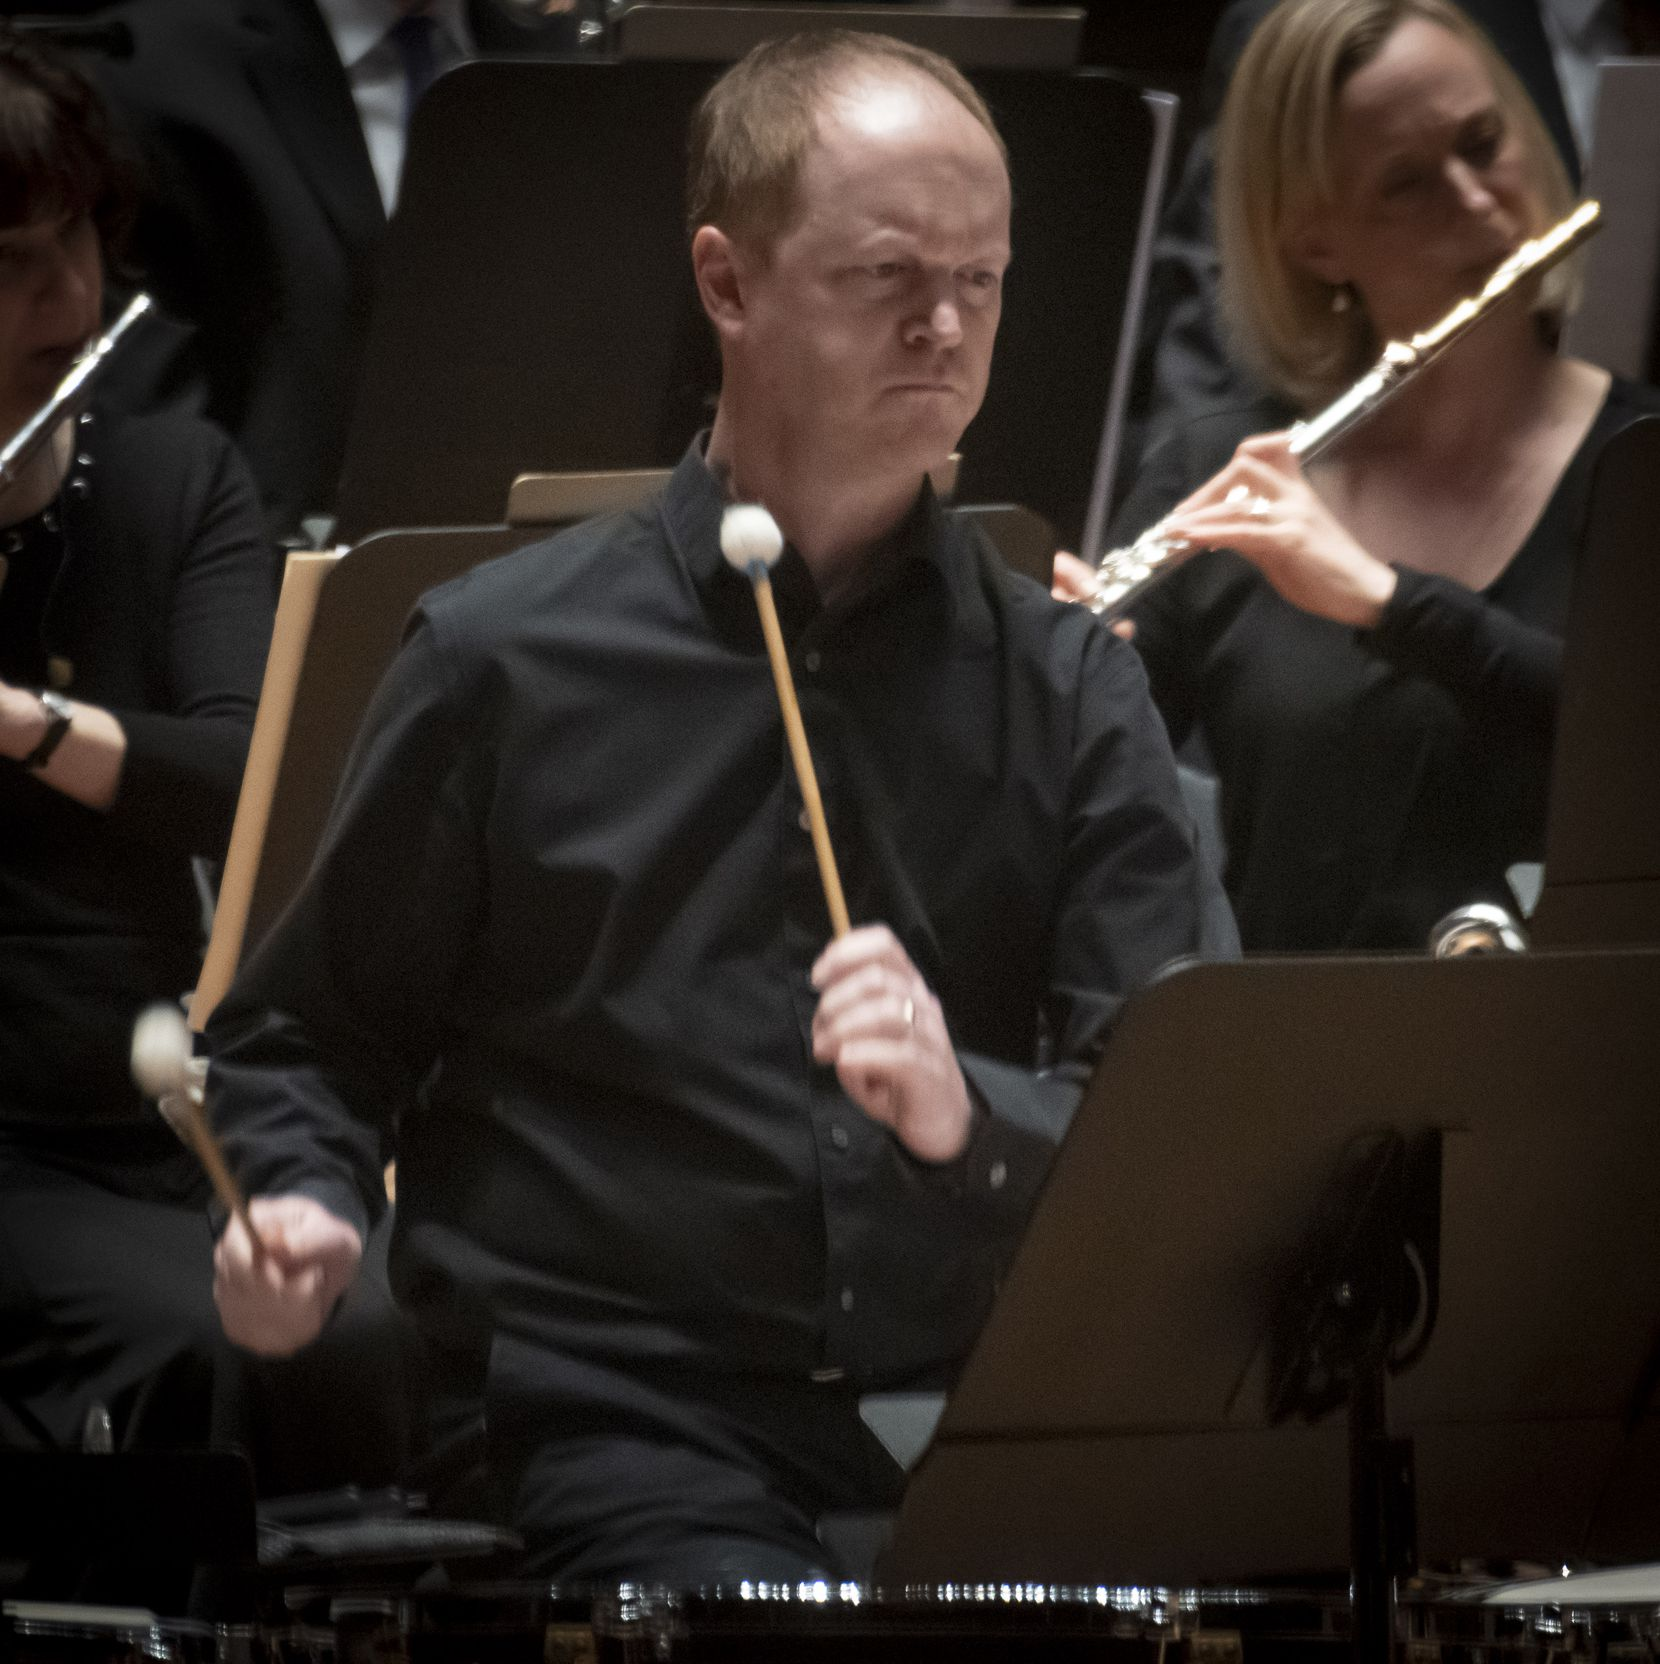 """Dallas Symphony Orchestra principal timpanist Brian Jones performs the world premiere of Steven Mackey's timpani concerto """"A Different Drummer"""" with the orchestra and principal guest conductor Gemma New at the Meyerson Symphony Center on November 8, 2019."""